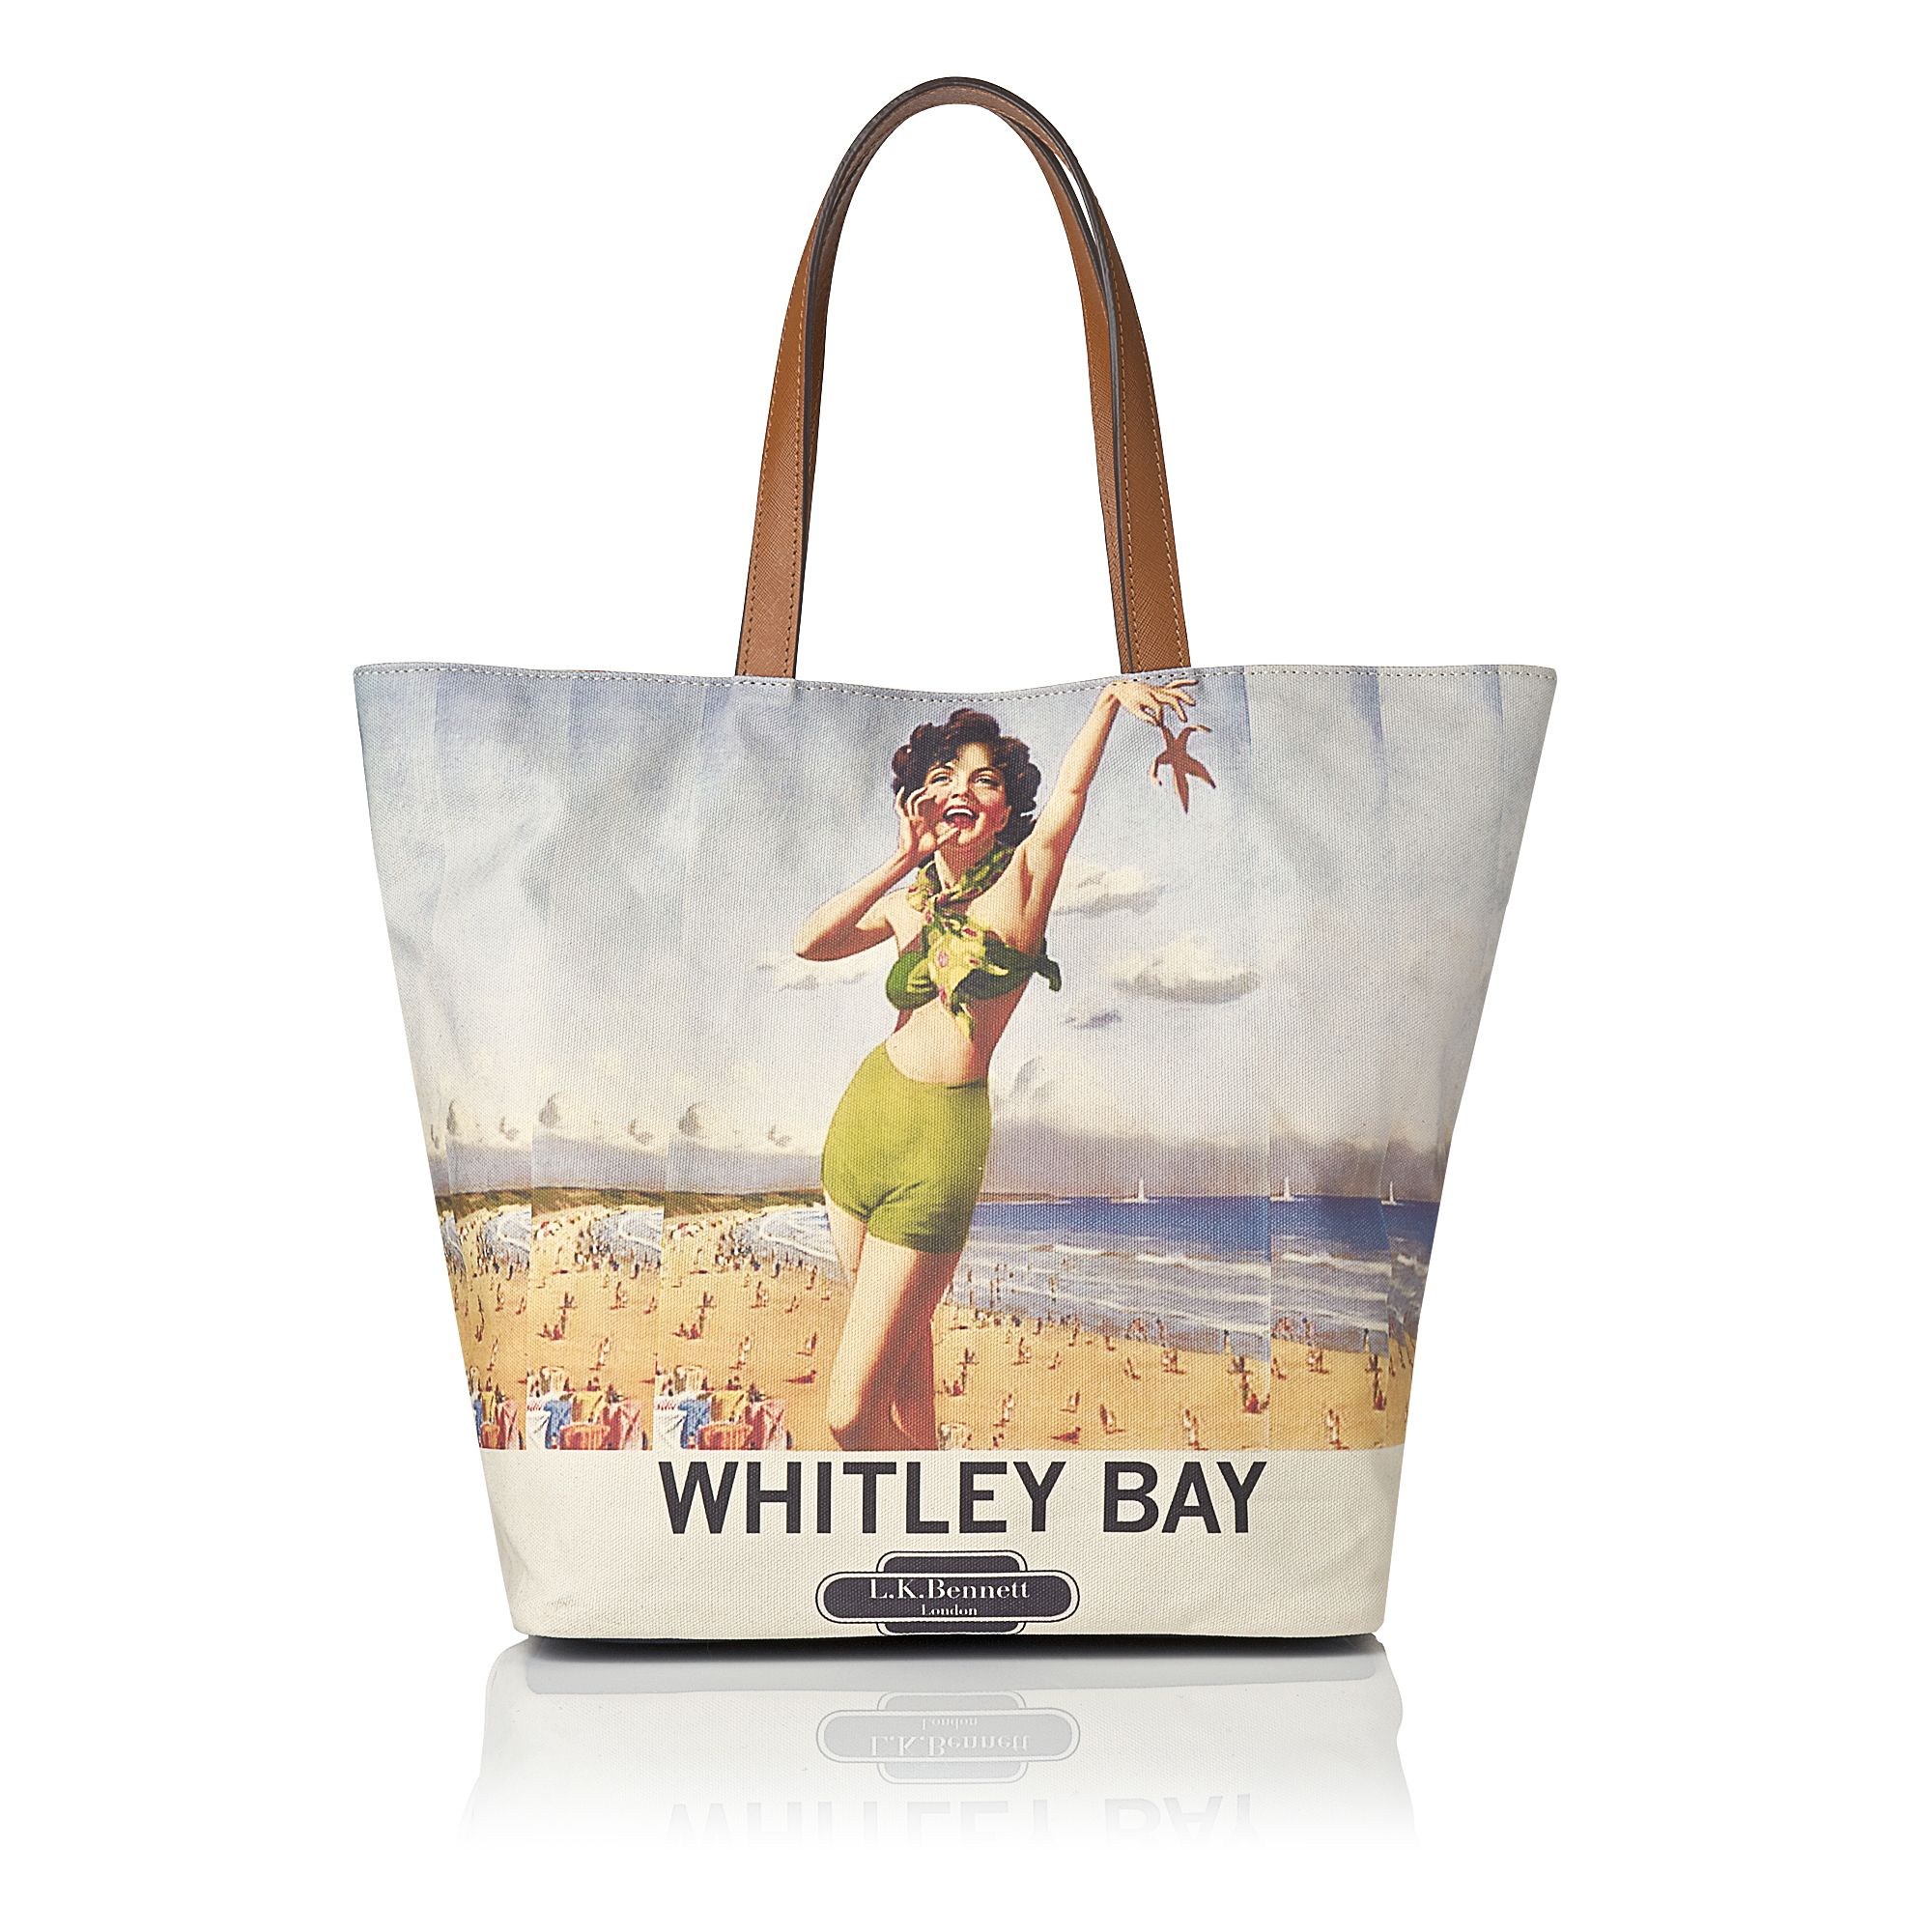 Whitleybay canvas beach bag